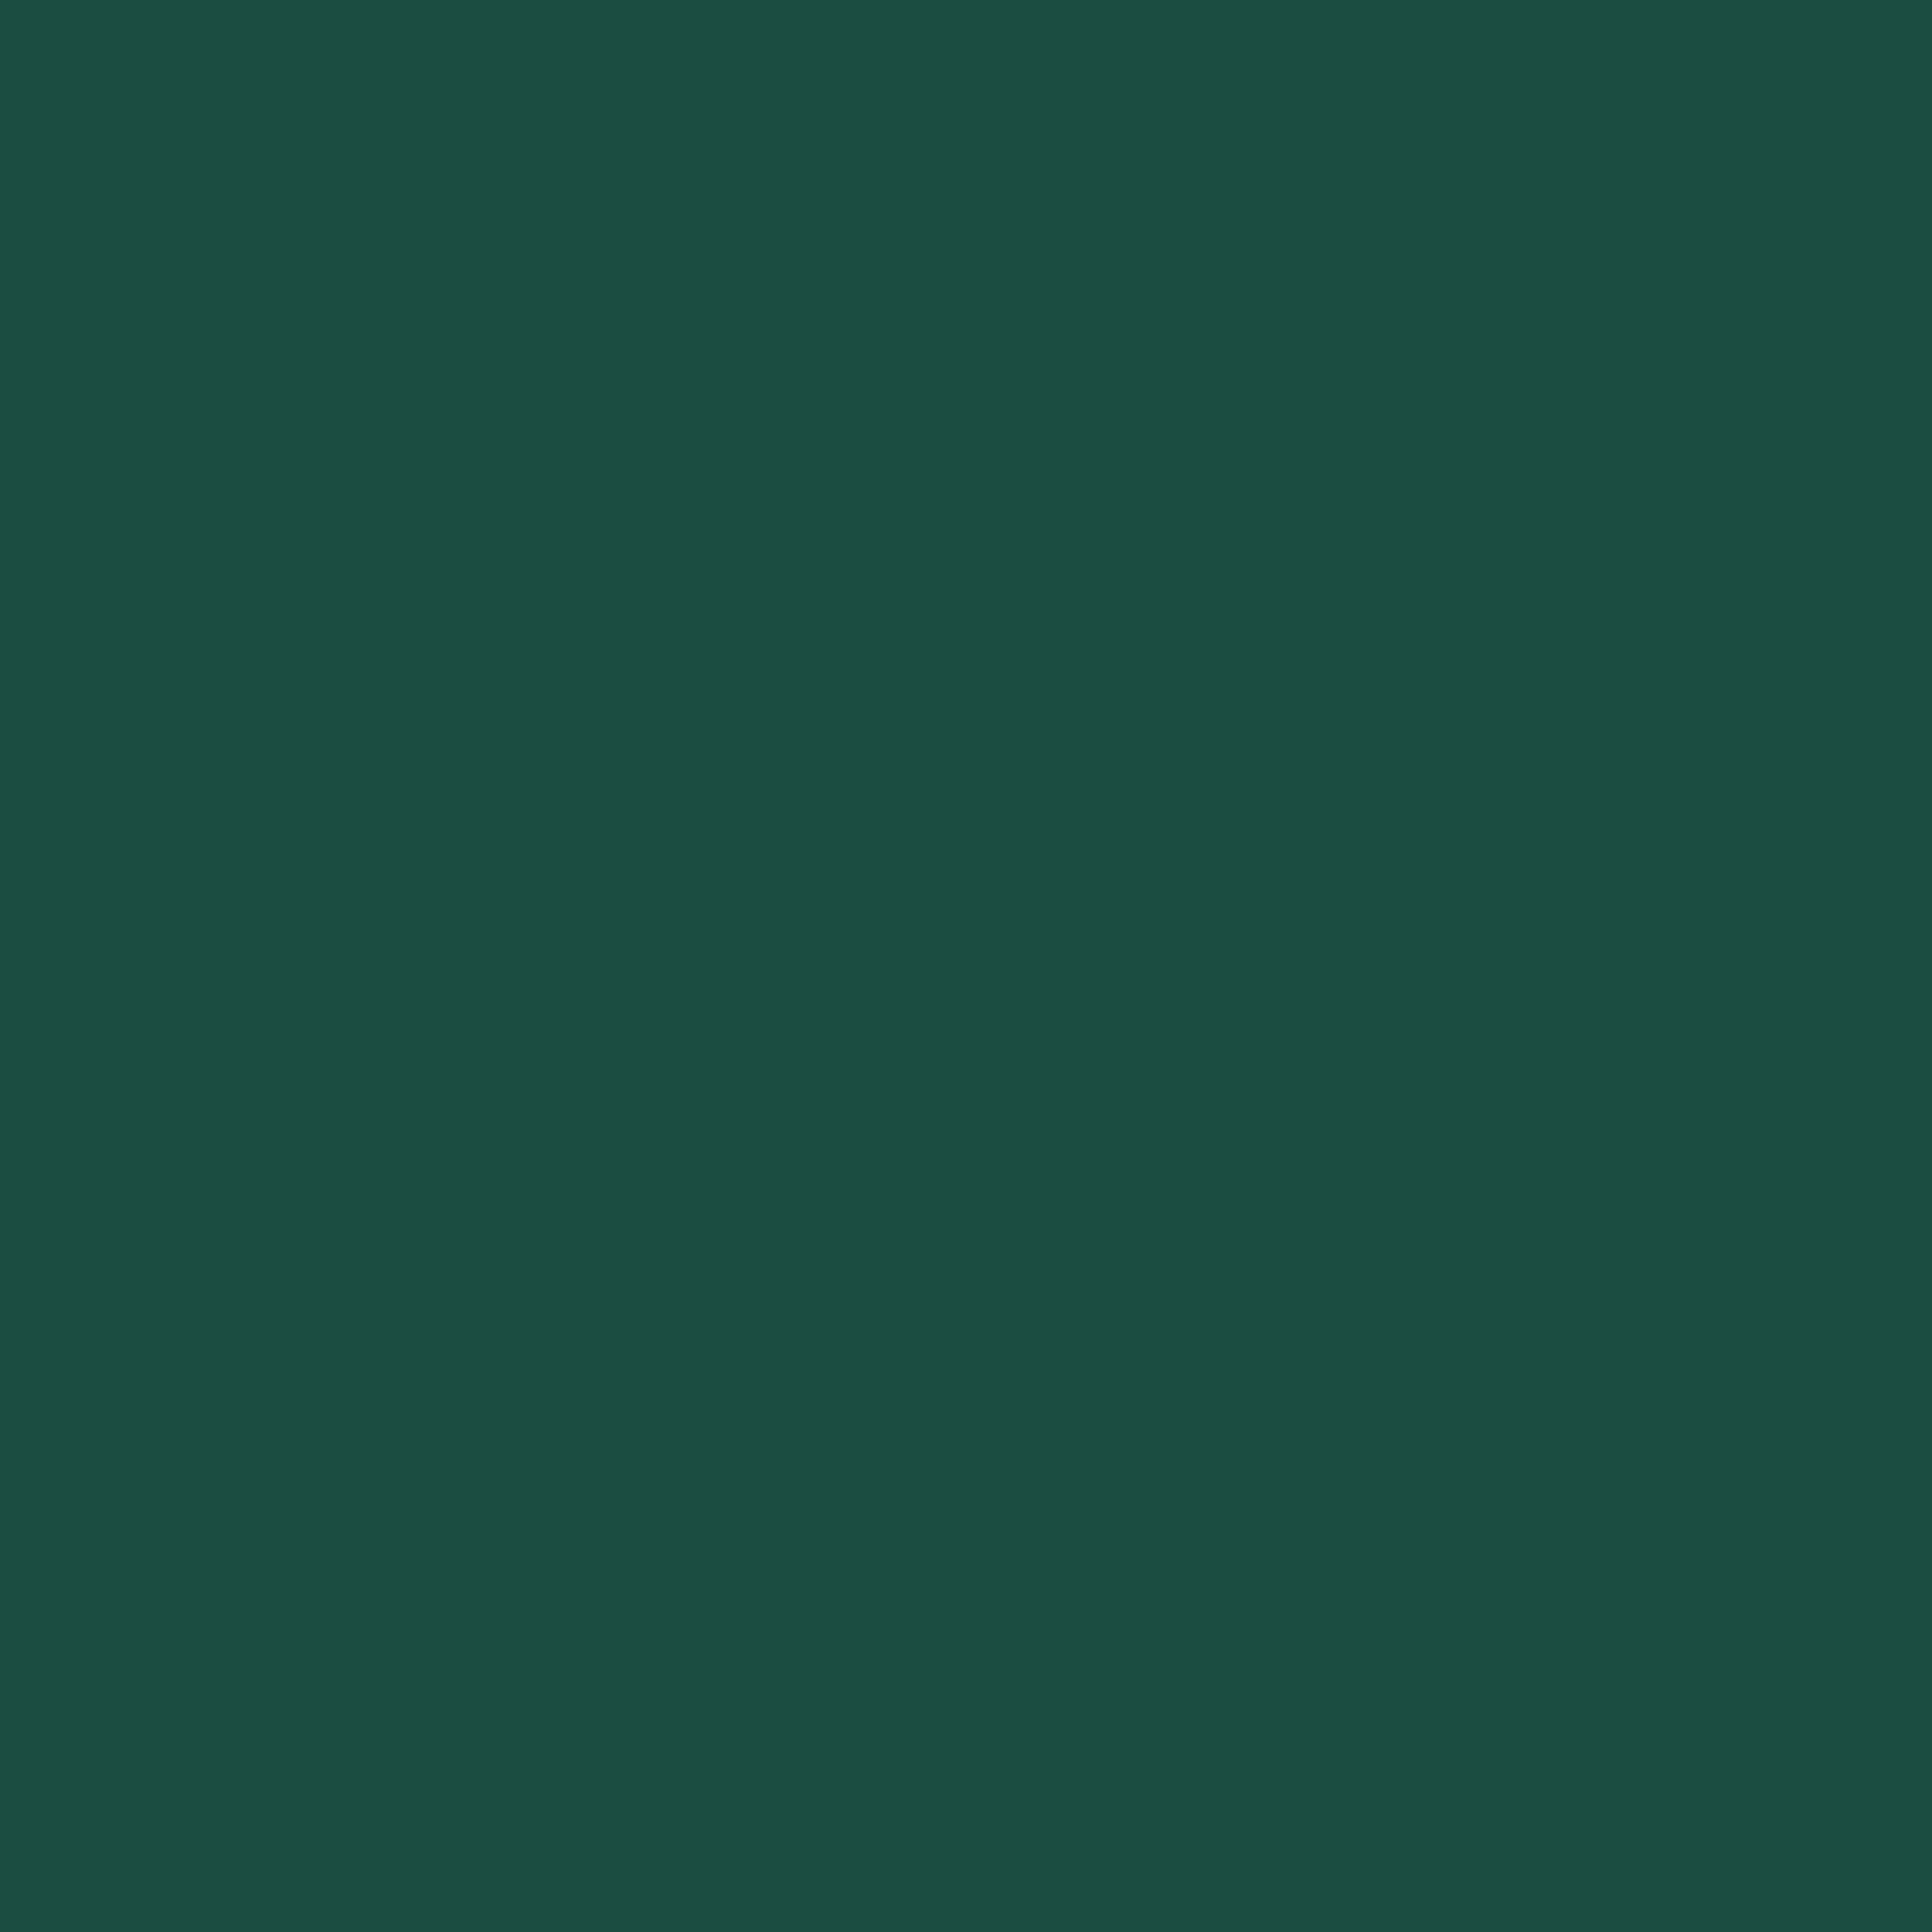 2048x2048 English Green Solid Color Background